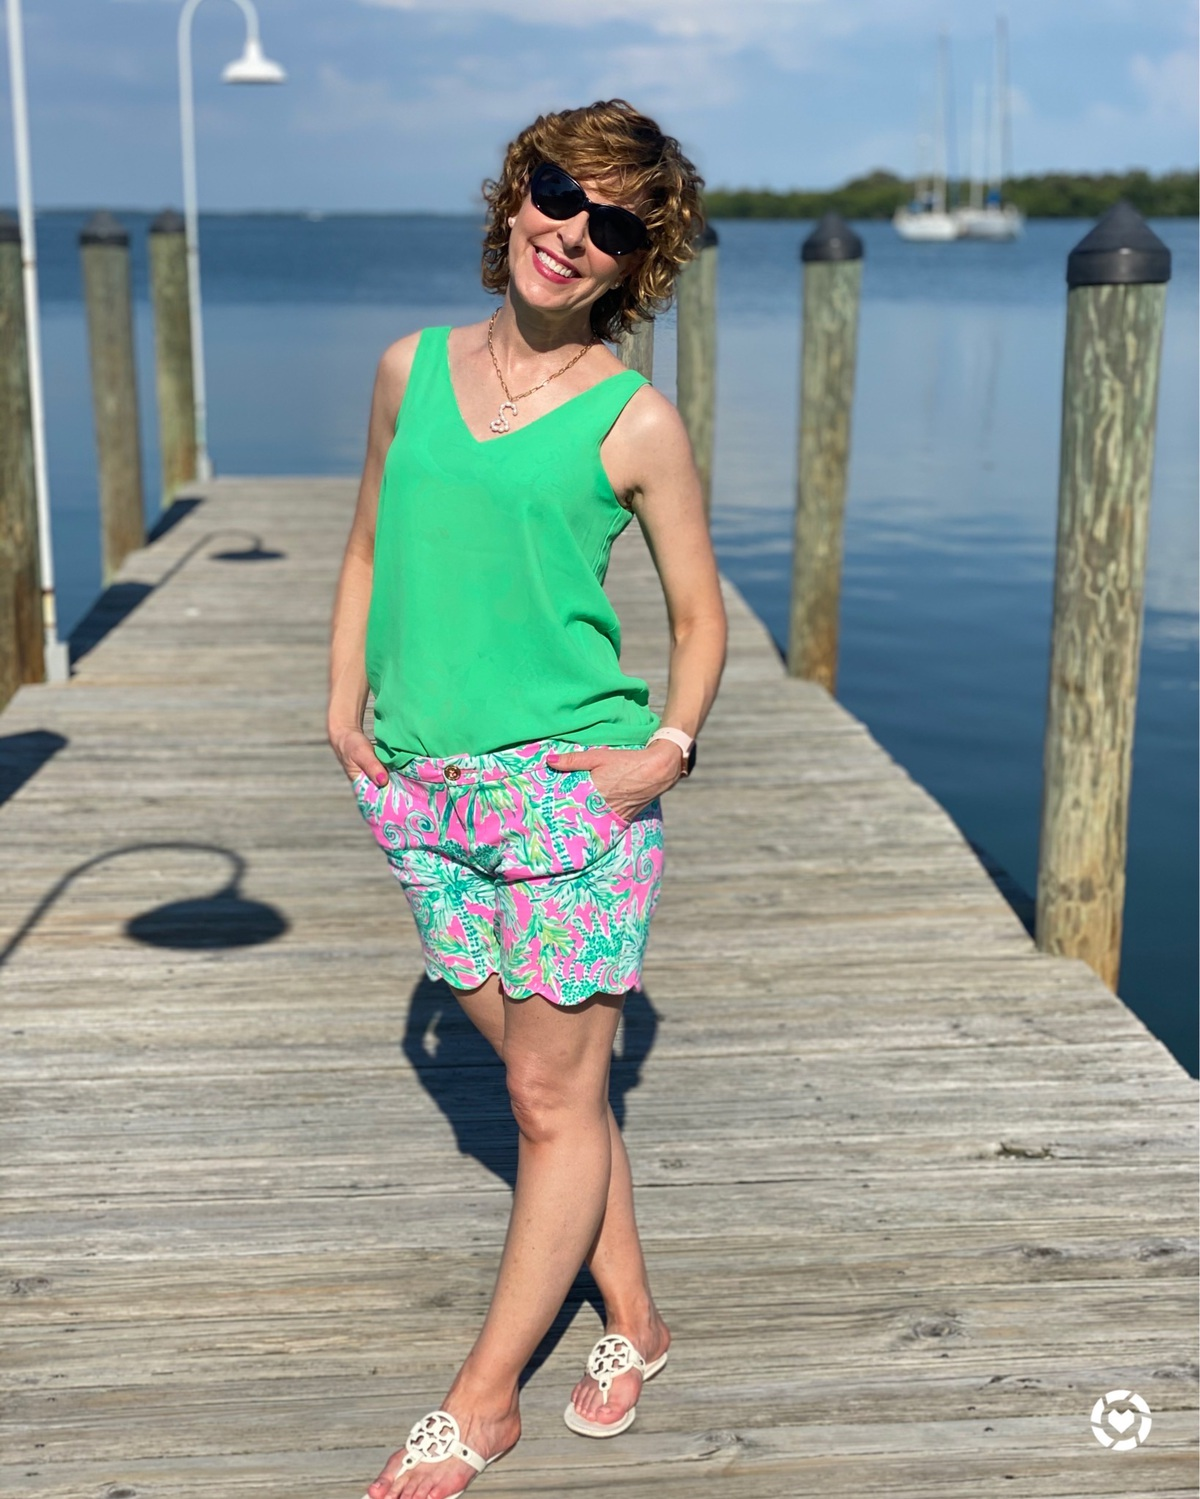 woman wearing green tank top and lilly pulitzer shorts standing on a dock